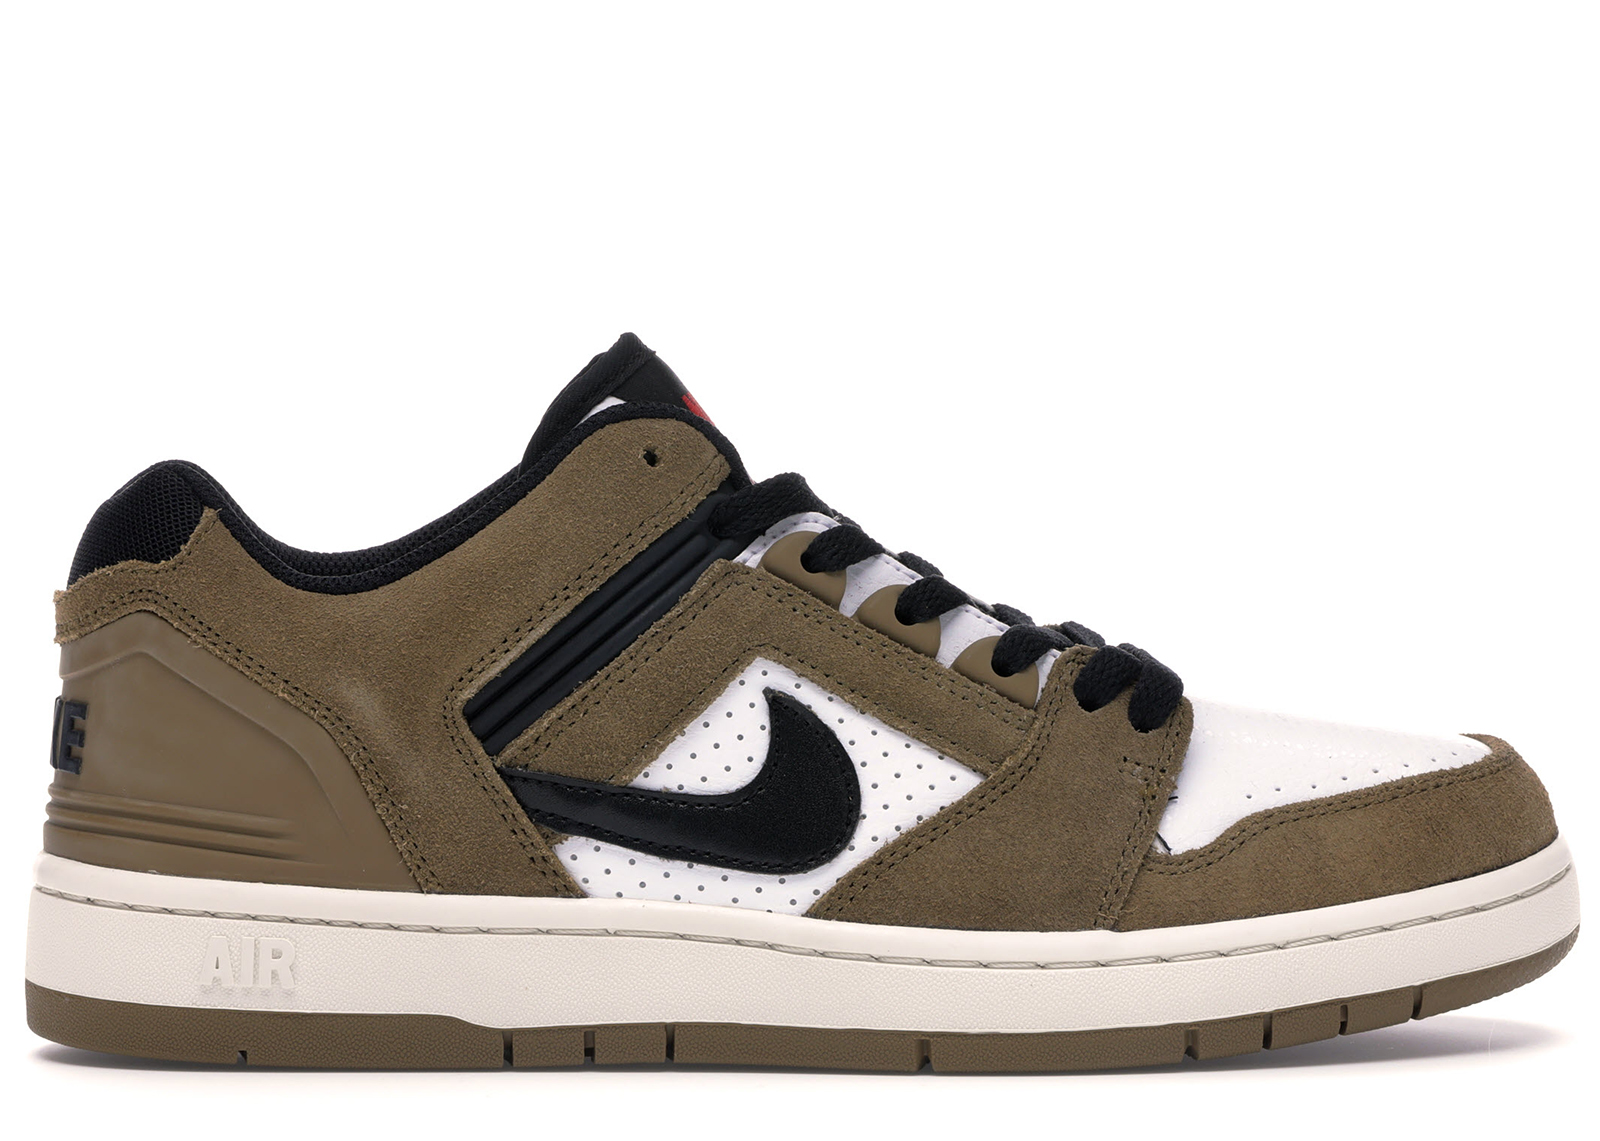 Nike SB Air Force 2 Low Escape - AO0300-300